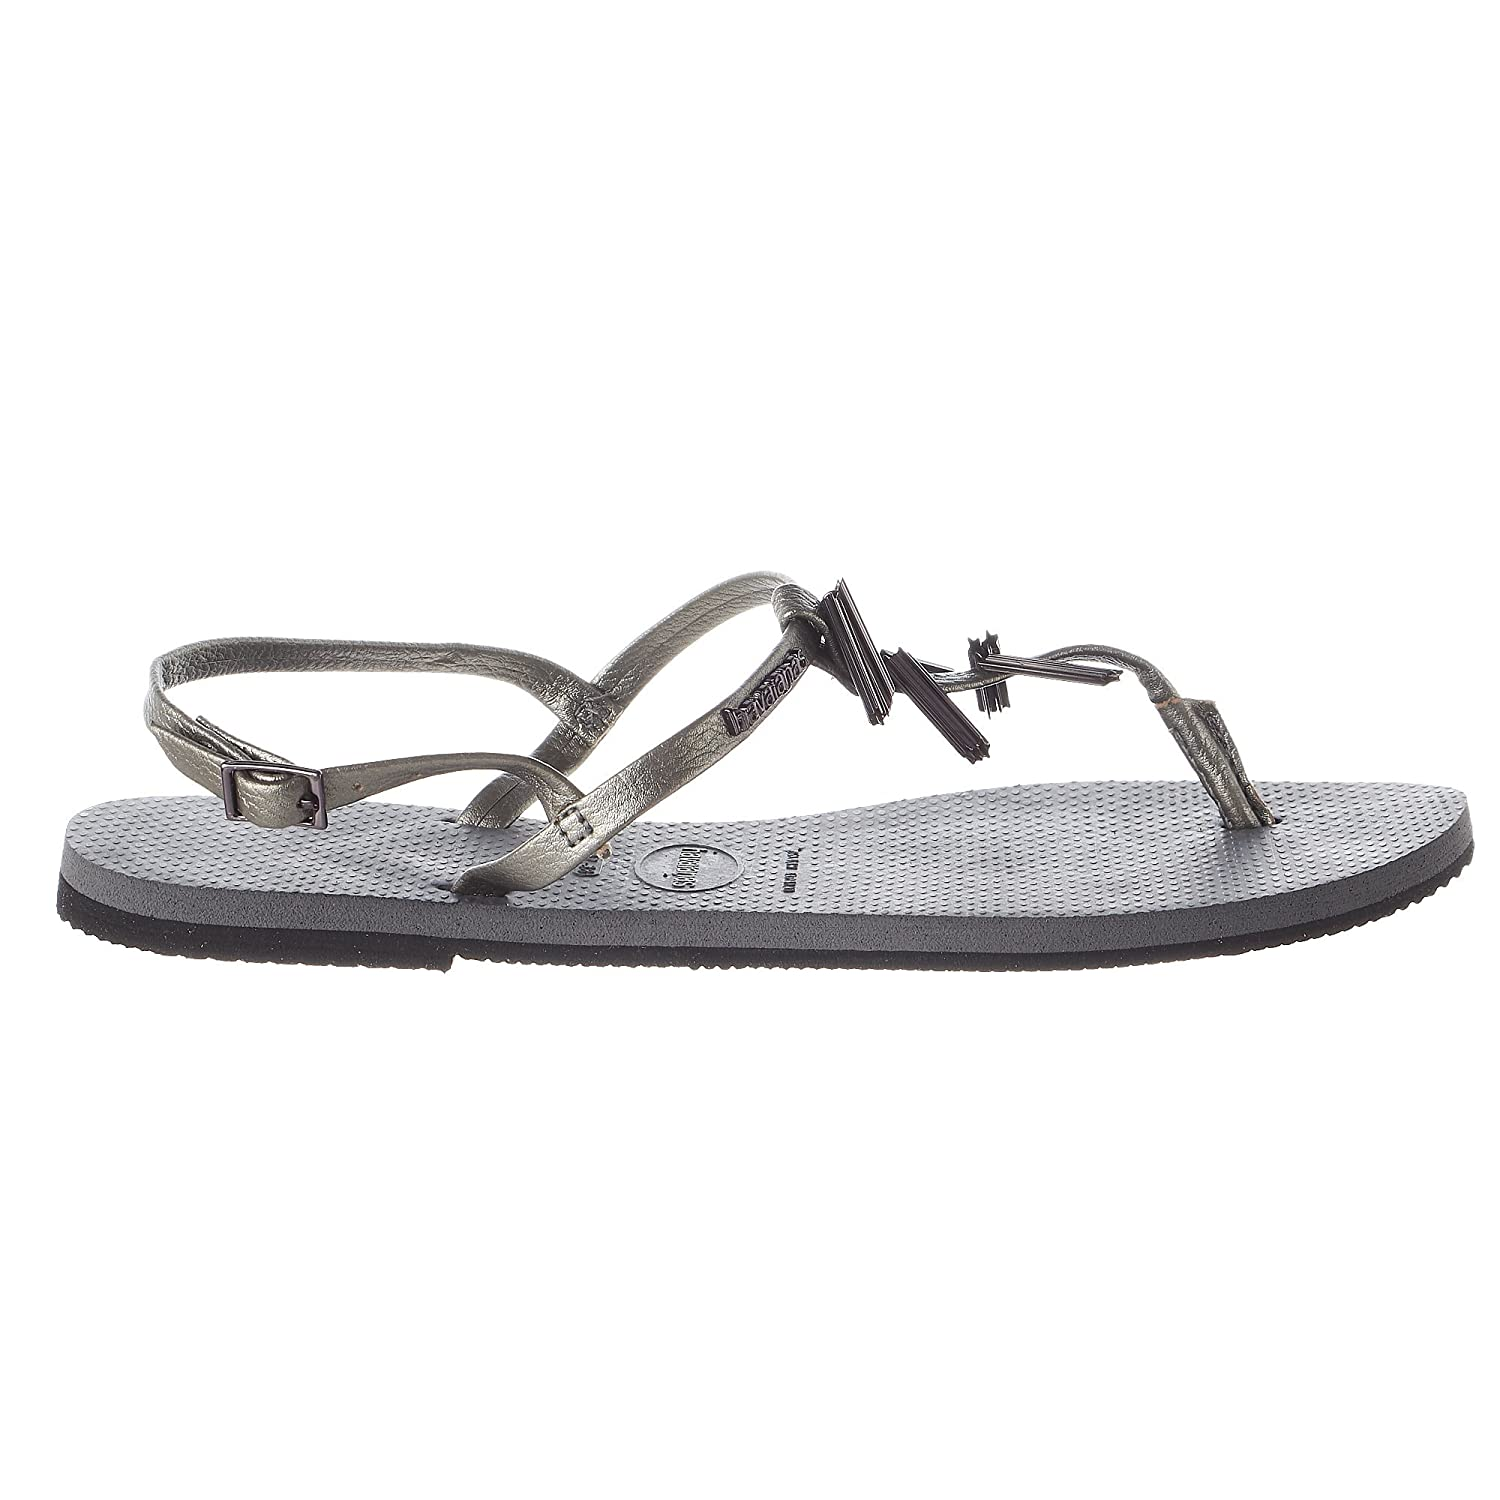 05cef9647639f Havaianas Women s You Riviera Maxi Sandals Steel Grey 41-42 M Bra   Amazon.co.uk  Shoes   Bags